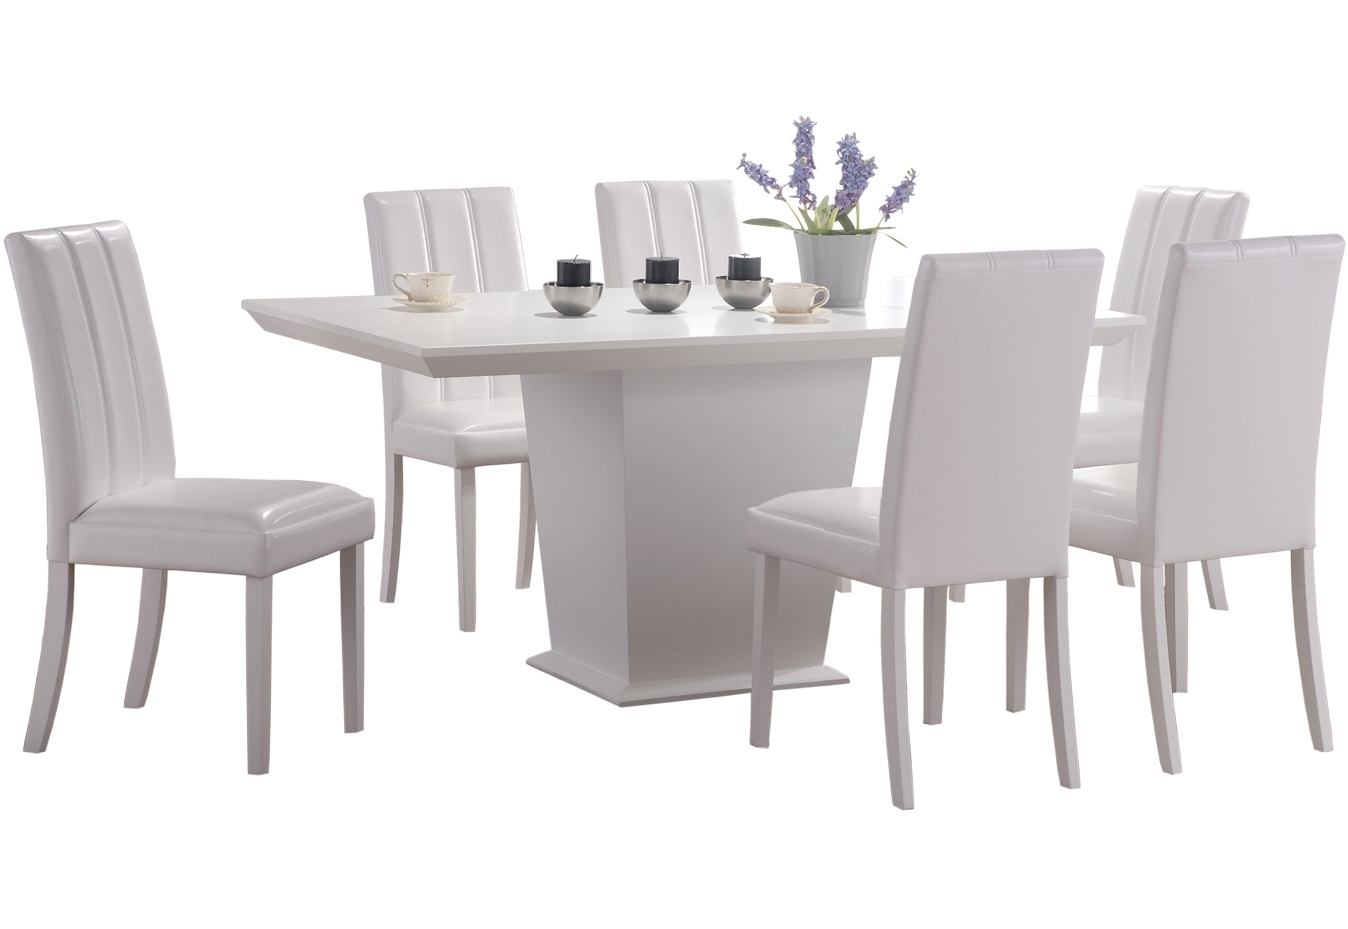 Most Up To Date Interesting White Dining Room Tables Pictures Design Ideas Chair Intended For White Dining Tables And 6 Chairs (View 14 of 25)